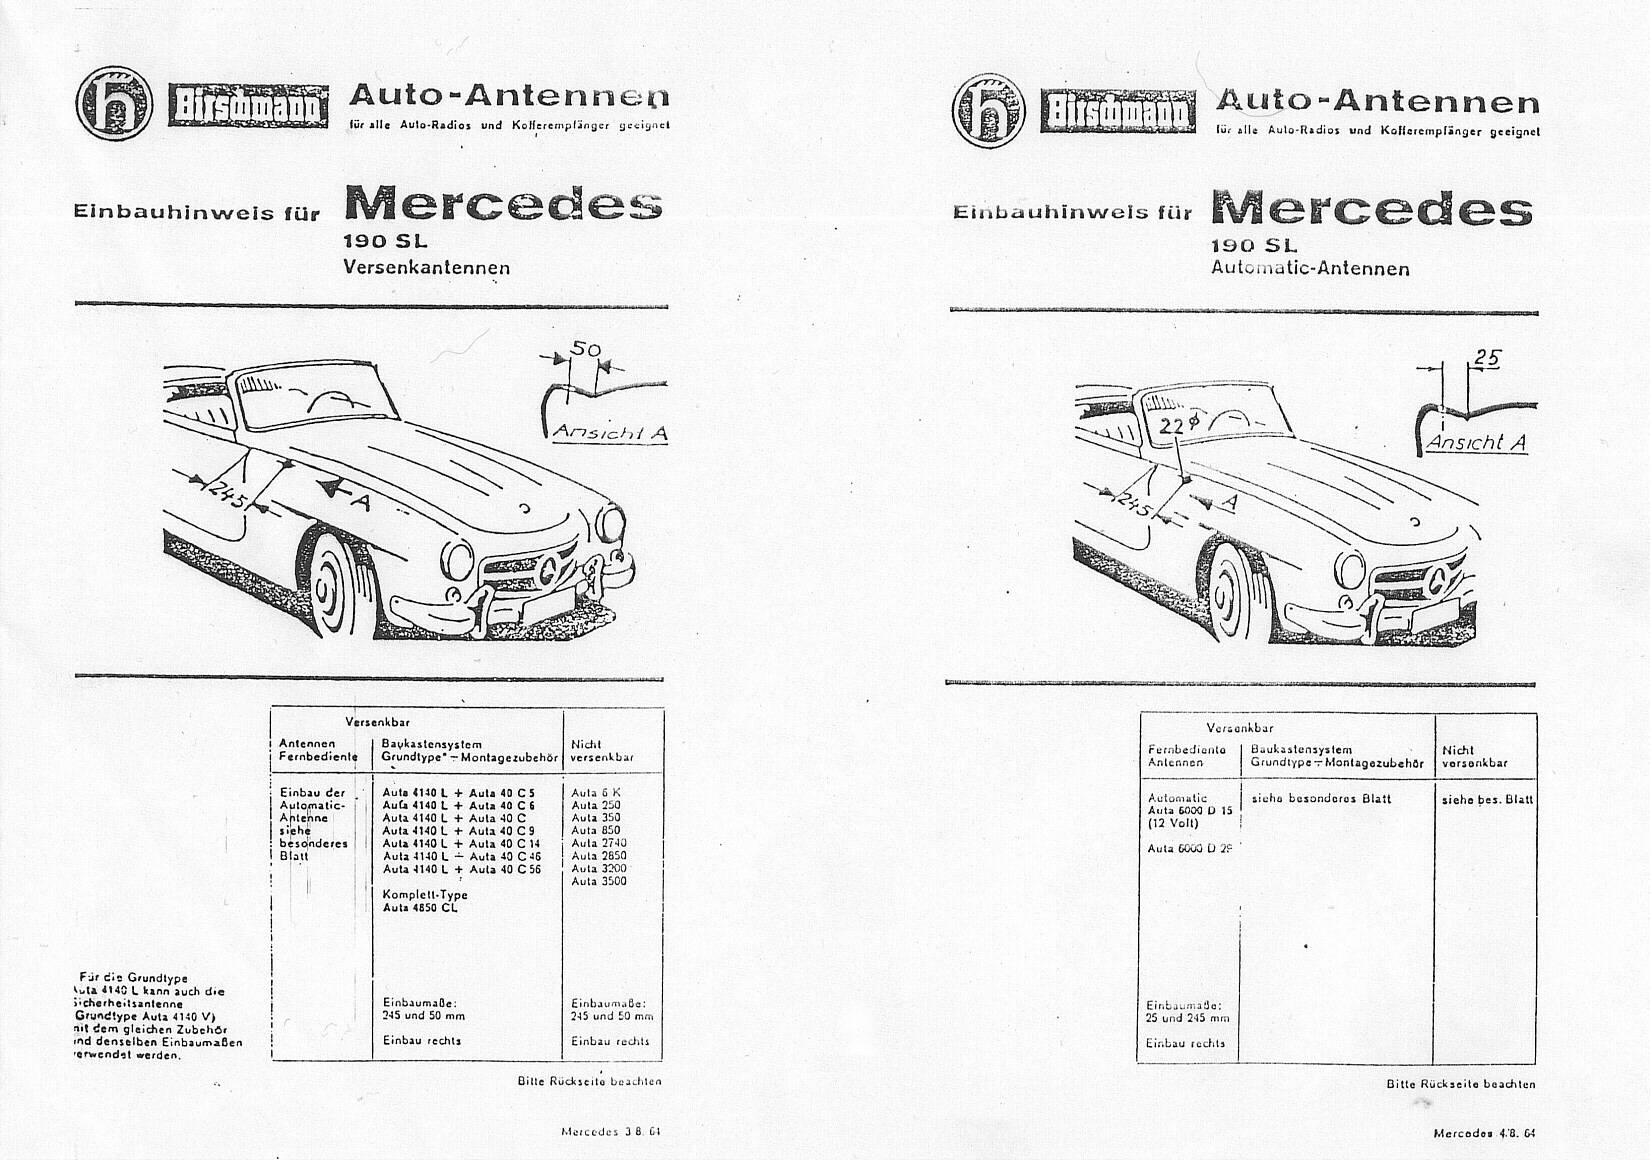 Mercedes Benz 190e Wiring Diagram Filetype Pdf W201 Engine Libraryhirschman Antenna Installation Manual Covers Page